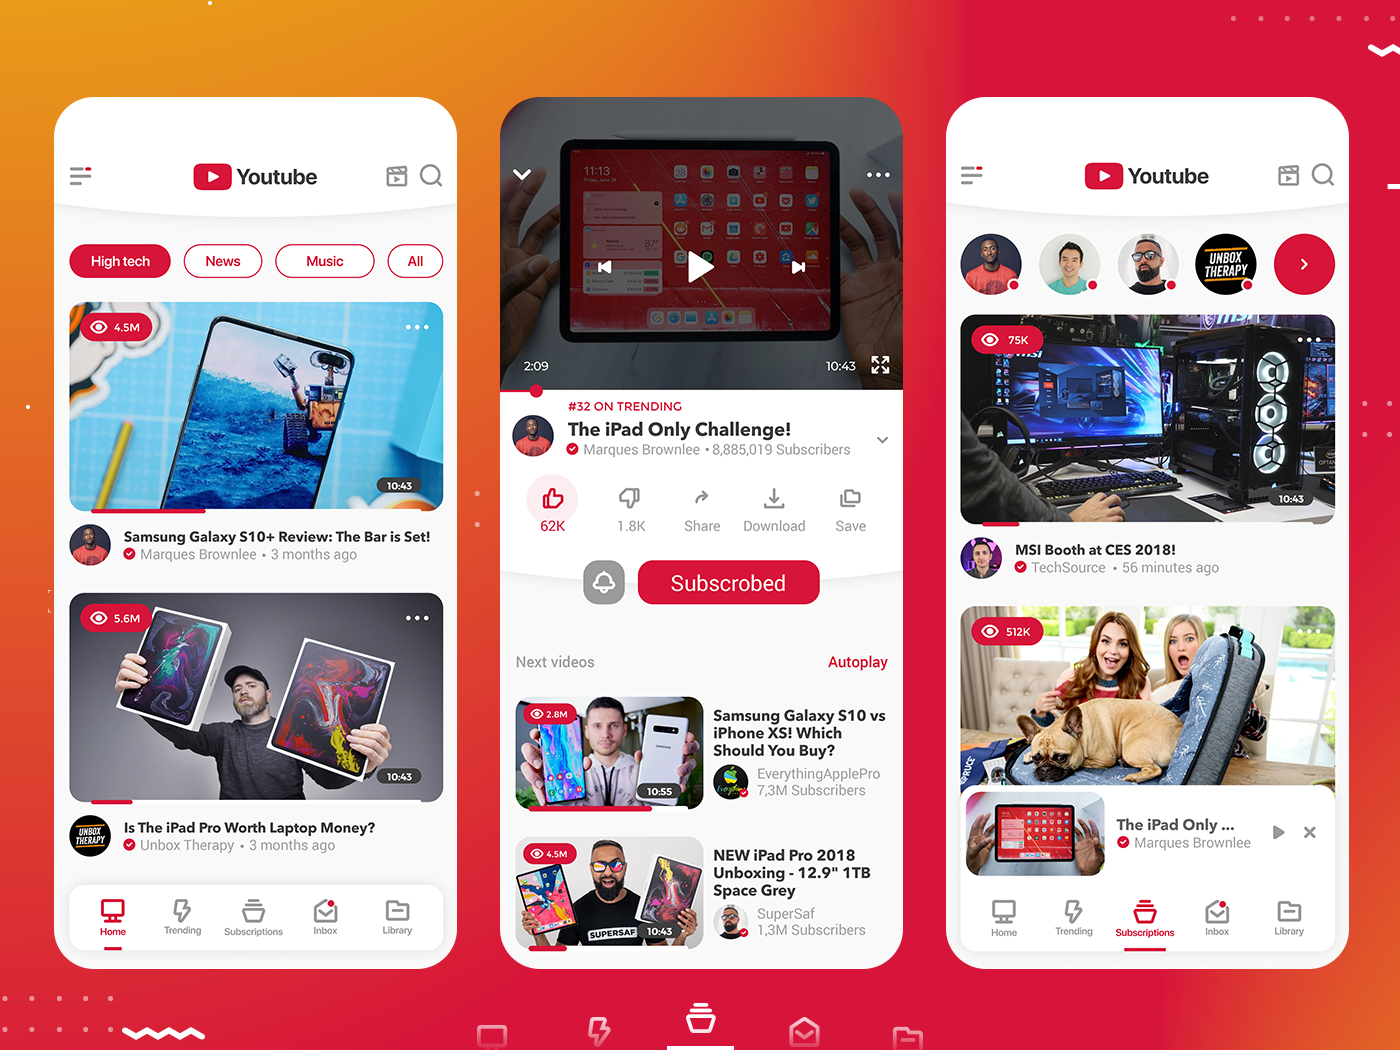 Youtube app - Ui redesign flat design flat ui app design design app ui  ux design user experience userinterface user interface adobe xd xd xddailychallenge flat ui design uiux uidesign ui kit app ui design app ui youtube app redesign concept youtube